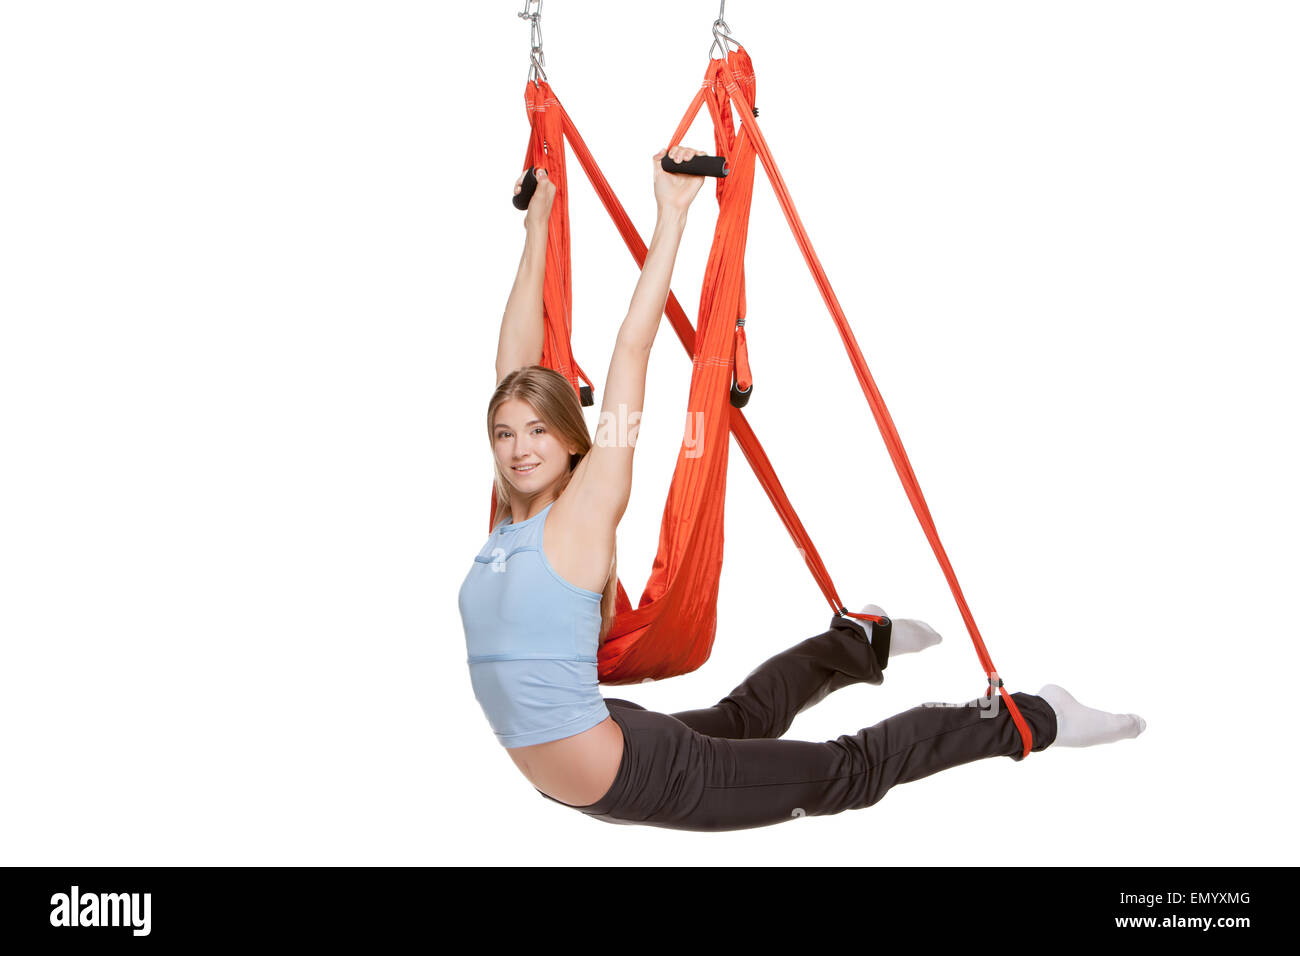 young woman doing anti gravity aerial yoga in red hammock on a seamless white background young woman doing anti gravity aerial yoga in red hammock on a      rh   alamy